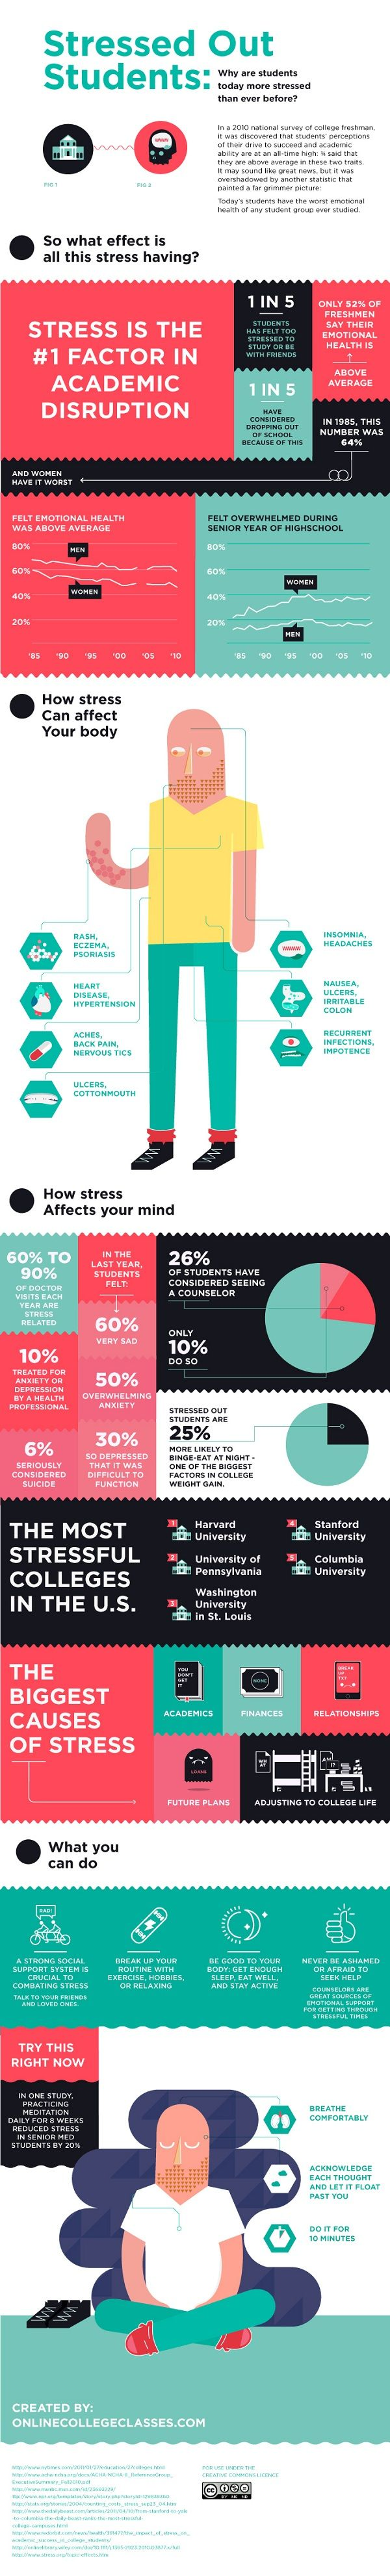 Stressed Out Students. Relieve your #Stress: http://www.pinterest.com/newdirectionsbh/relieve-your-stress/